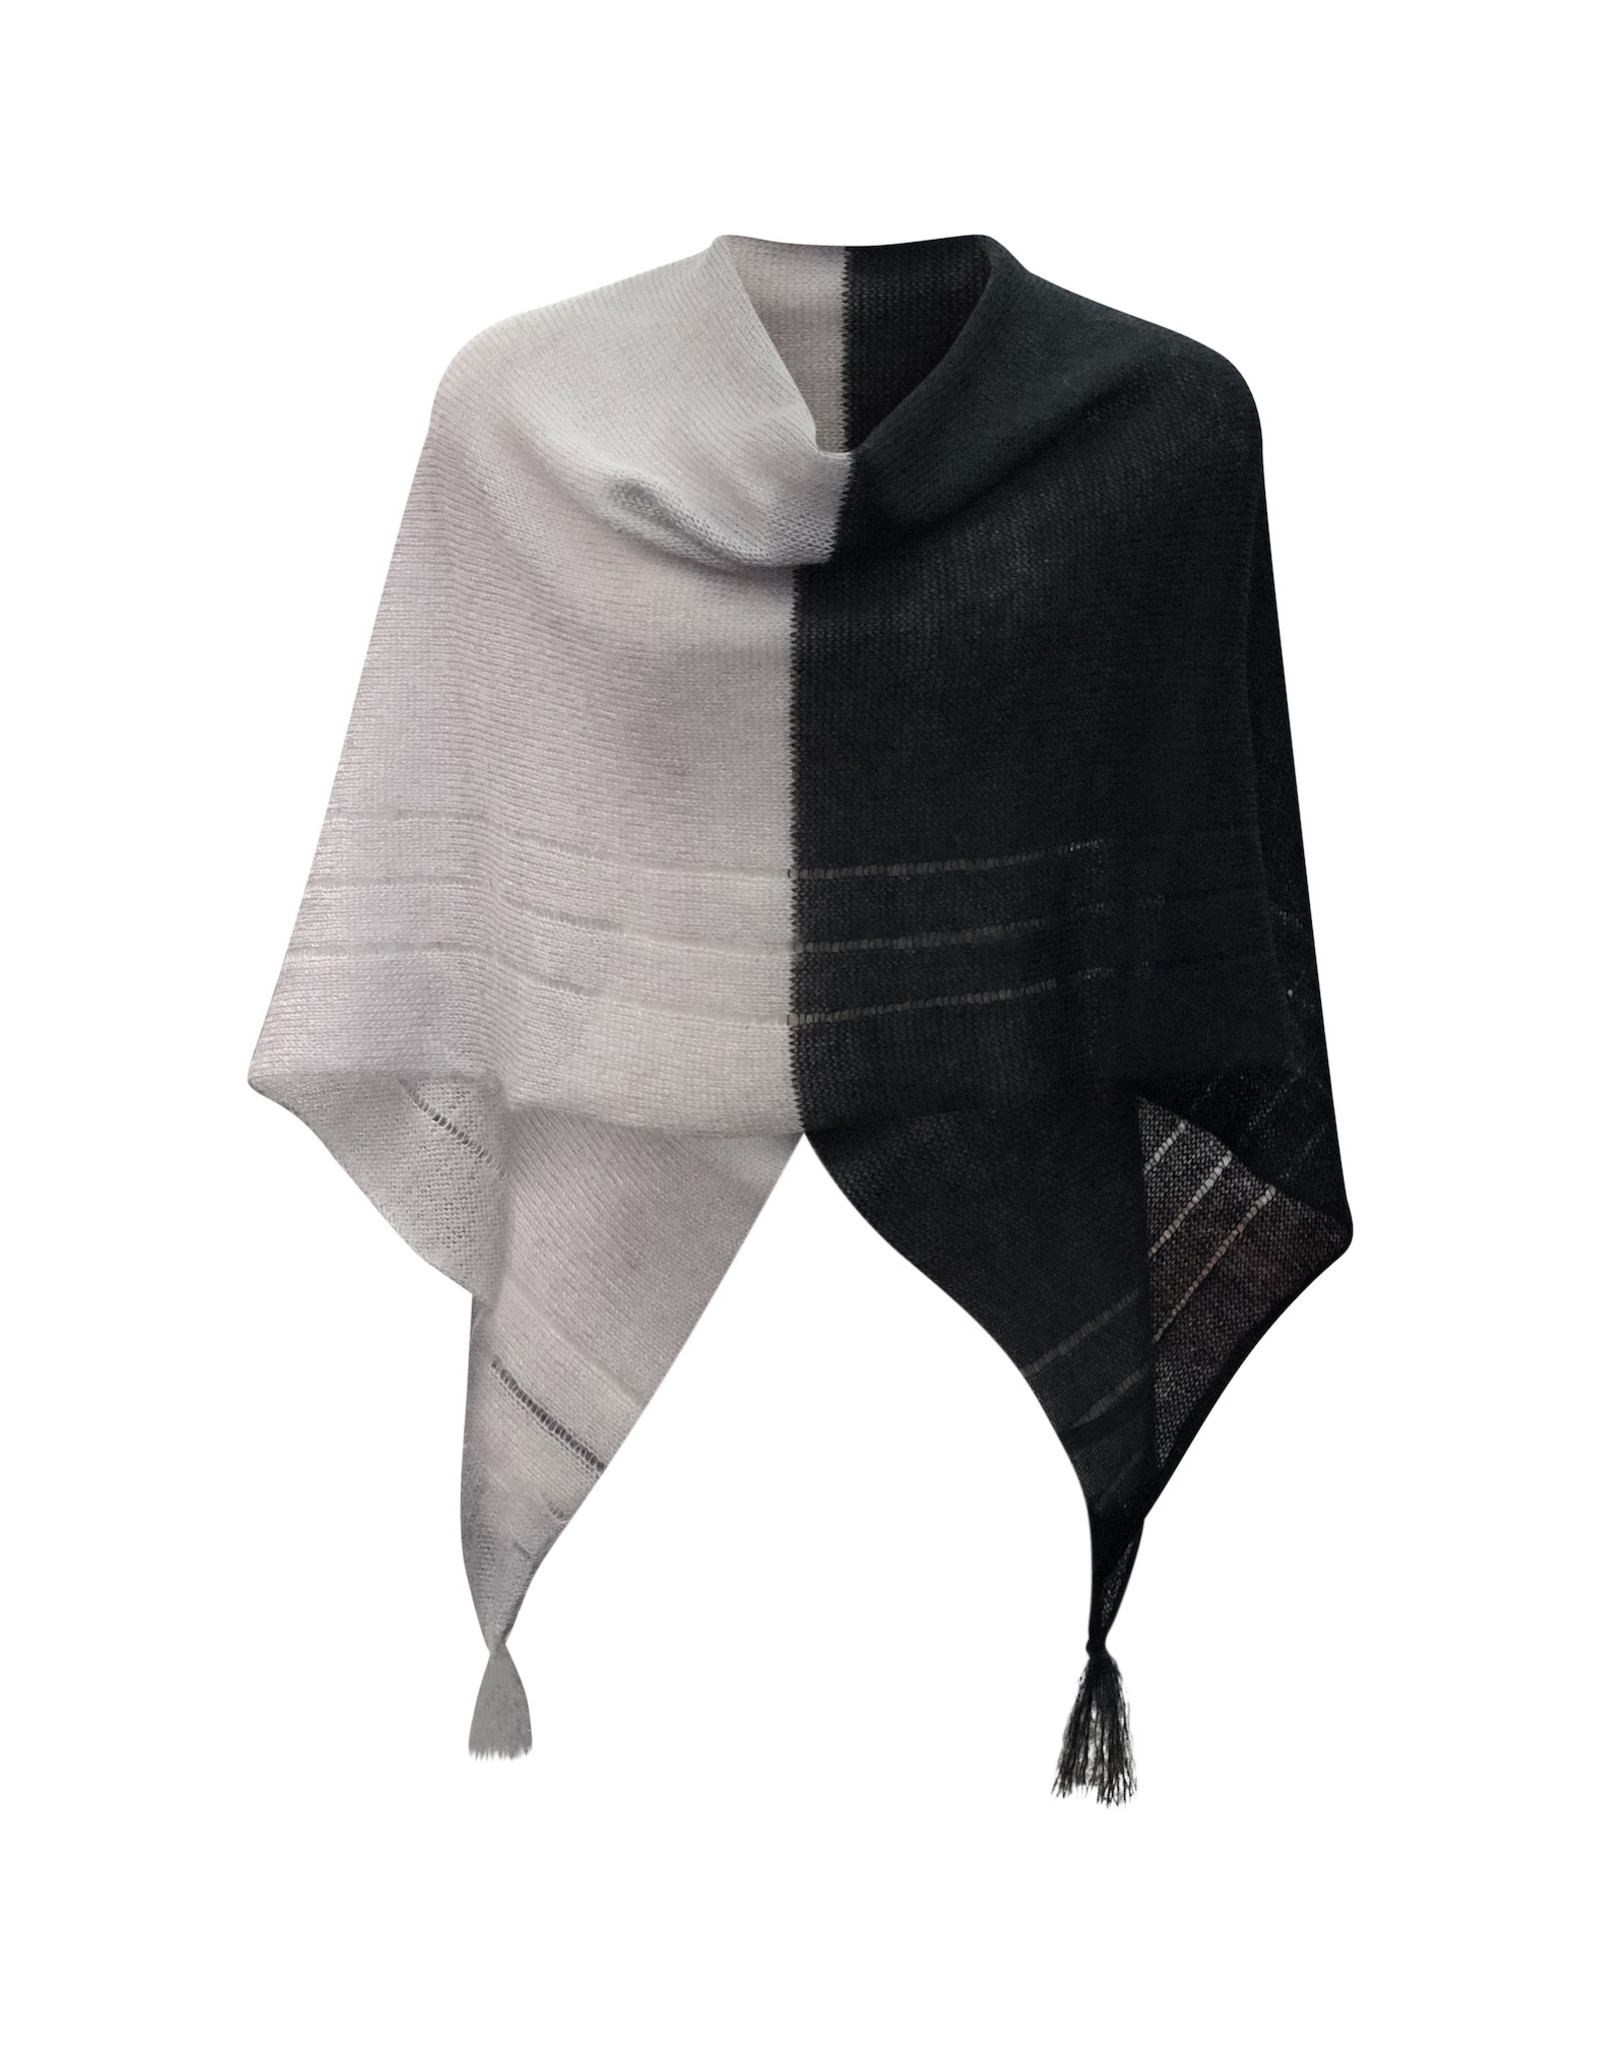 Ireland-Merino Wool Poncho in Blk/Gry